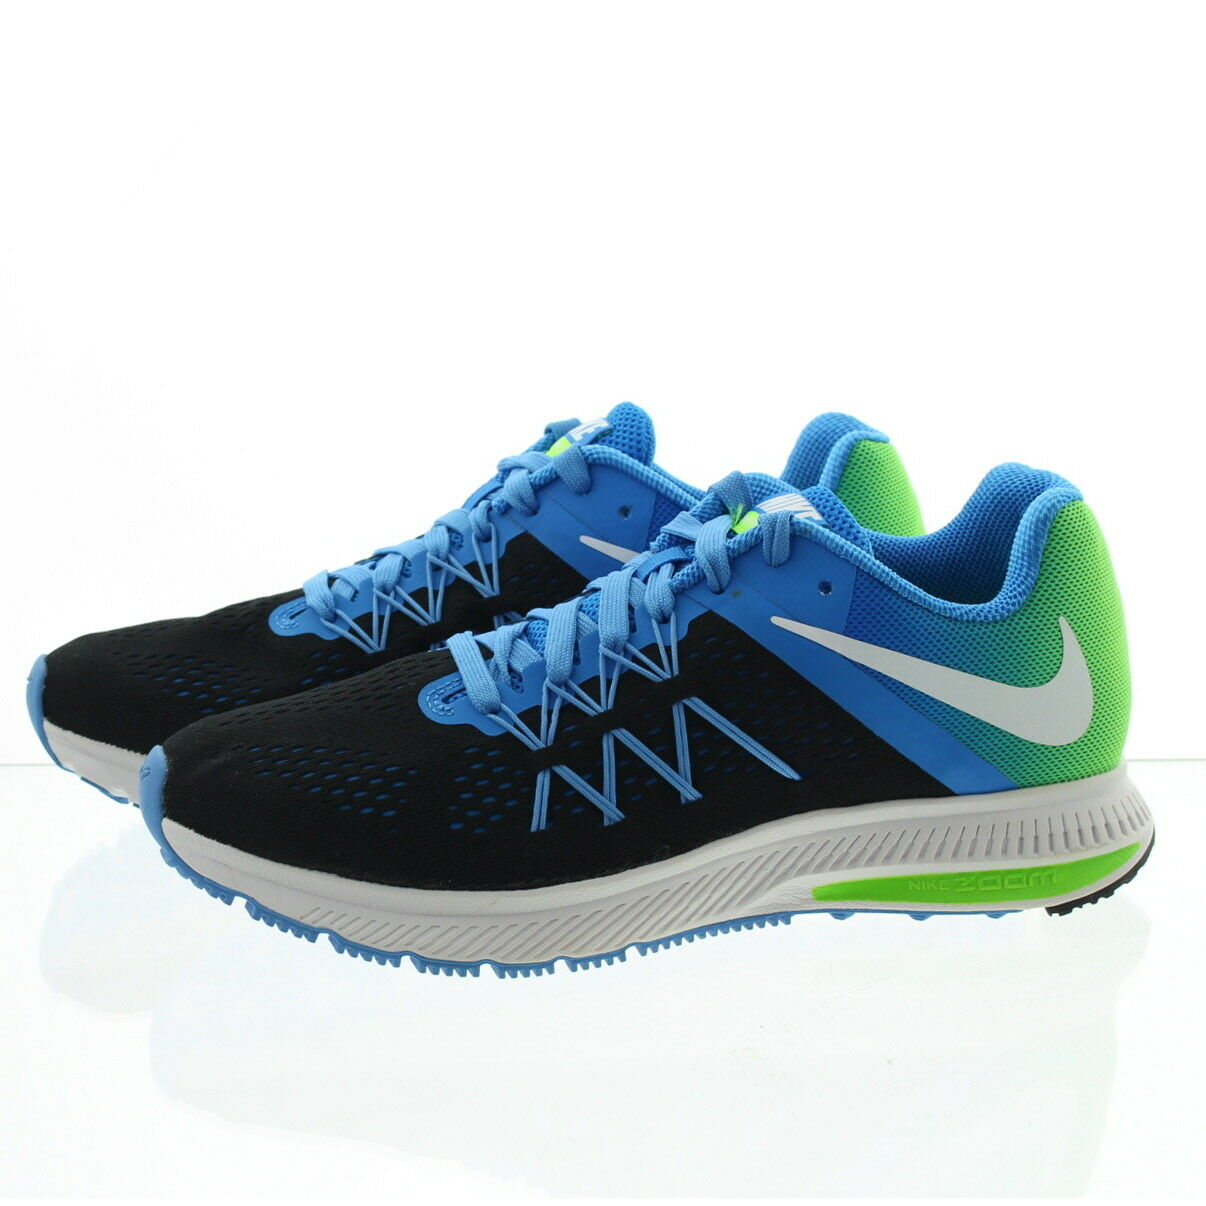 Nike 831563 Mens Winflo 3 Low Top Running Training Athletic shoes Sneakers